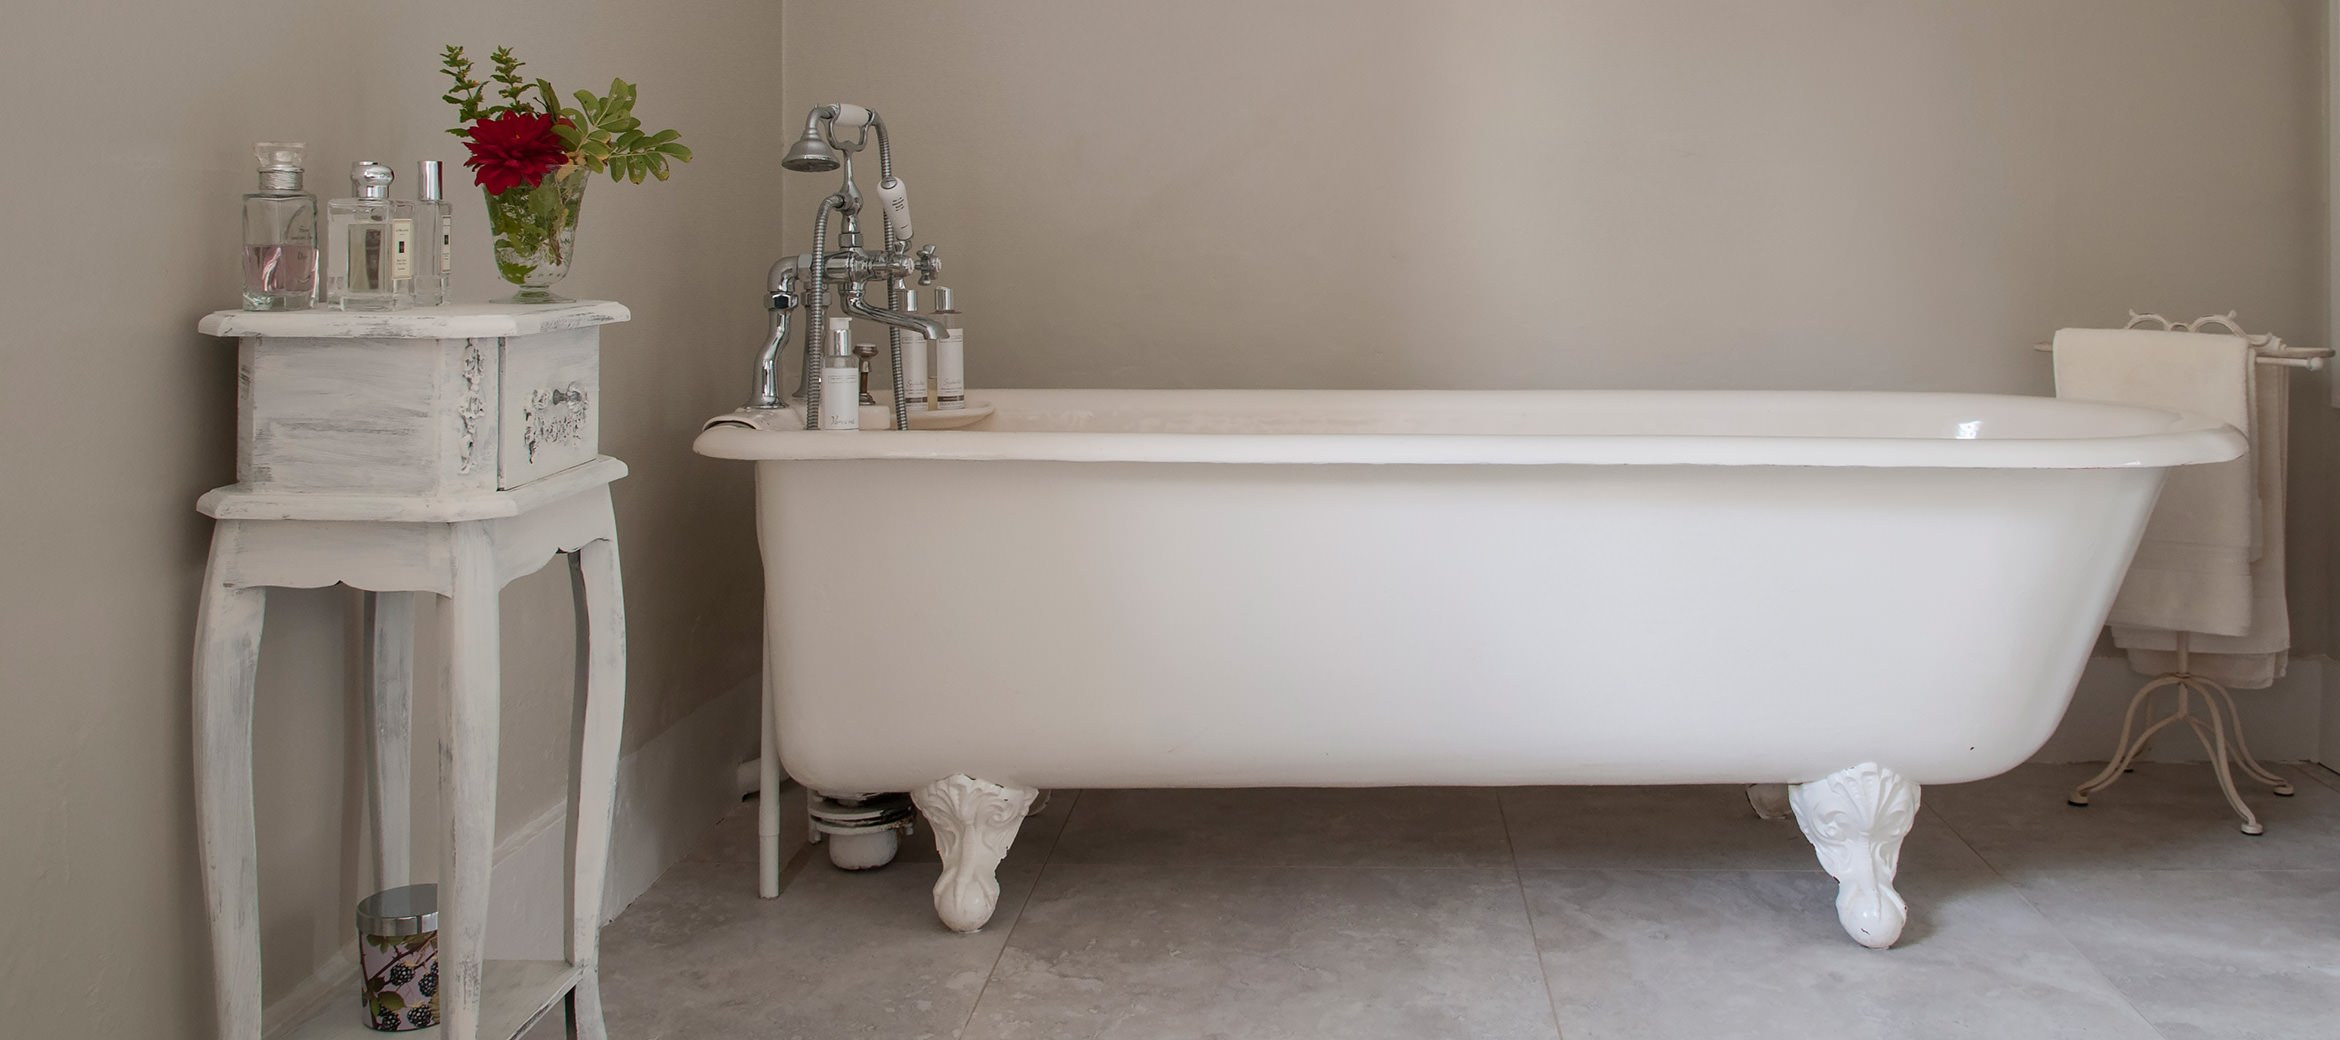 old-rectory-broadway-cast-iron-bath